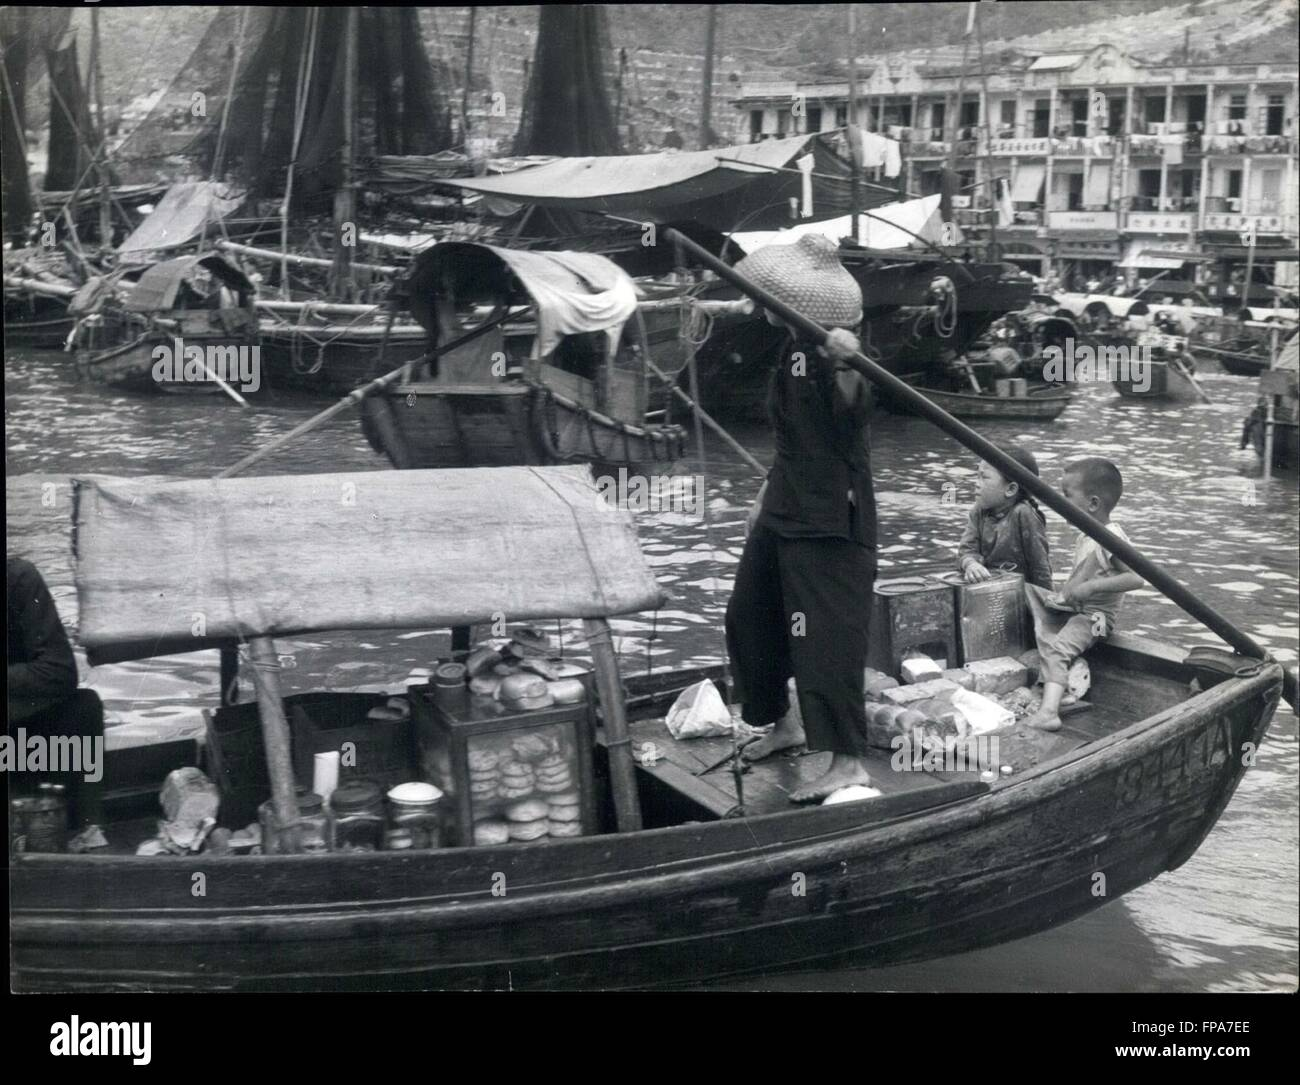 1959 - This waterborne Chinese woman refugee earns a living by selling cakes and fresh water to the fisherfolks - Stock Image